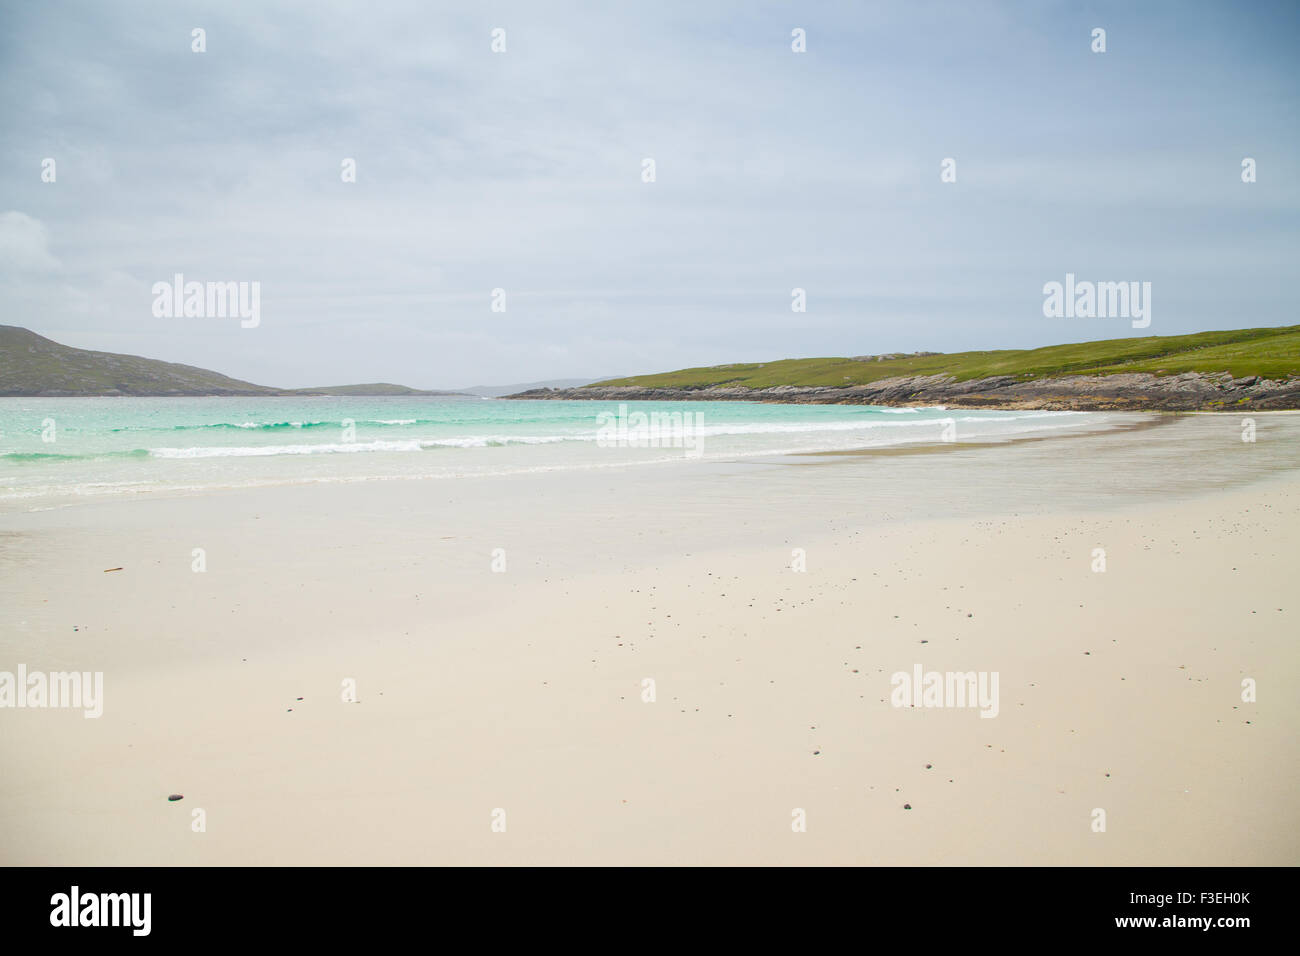 Looking South from the tip of Vatersay  over a white beach, Outer Hebrides Scotland - Stock Image